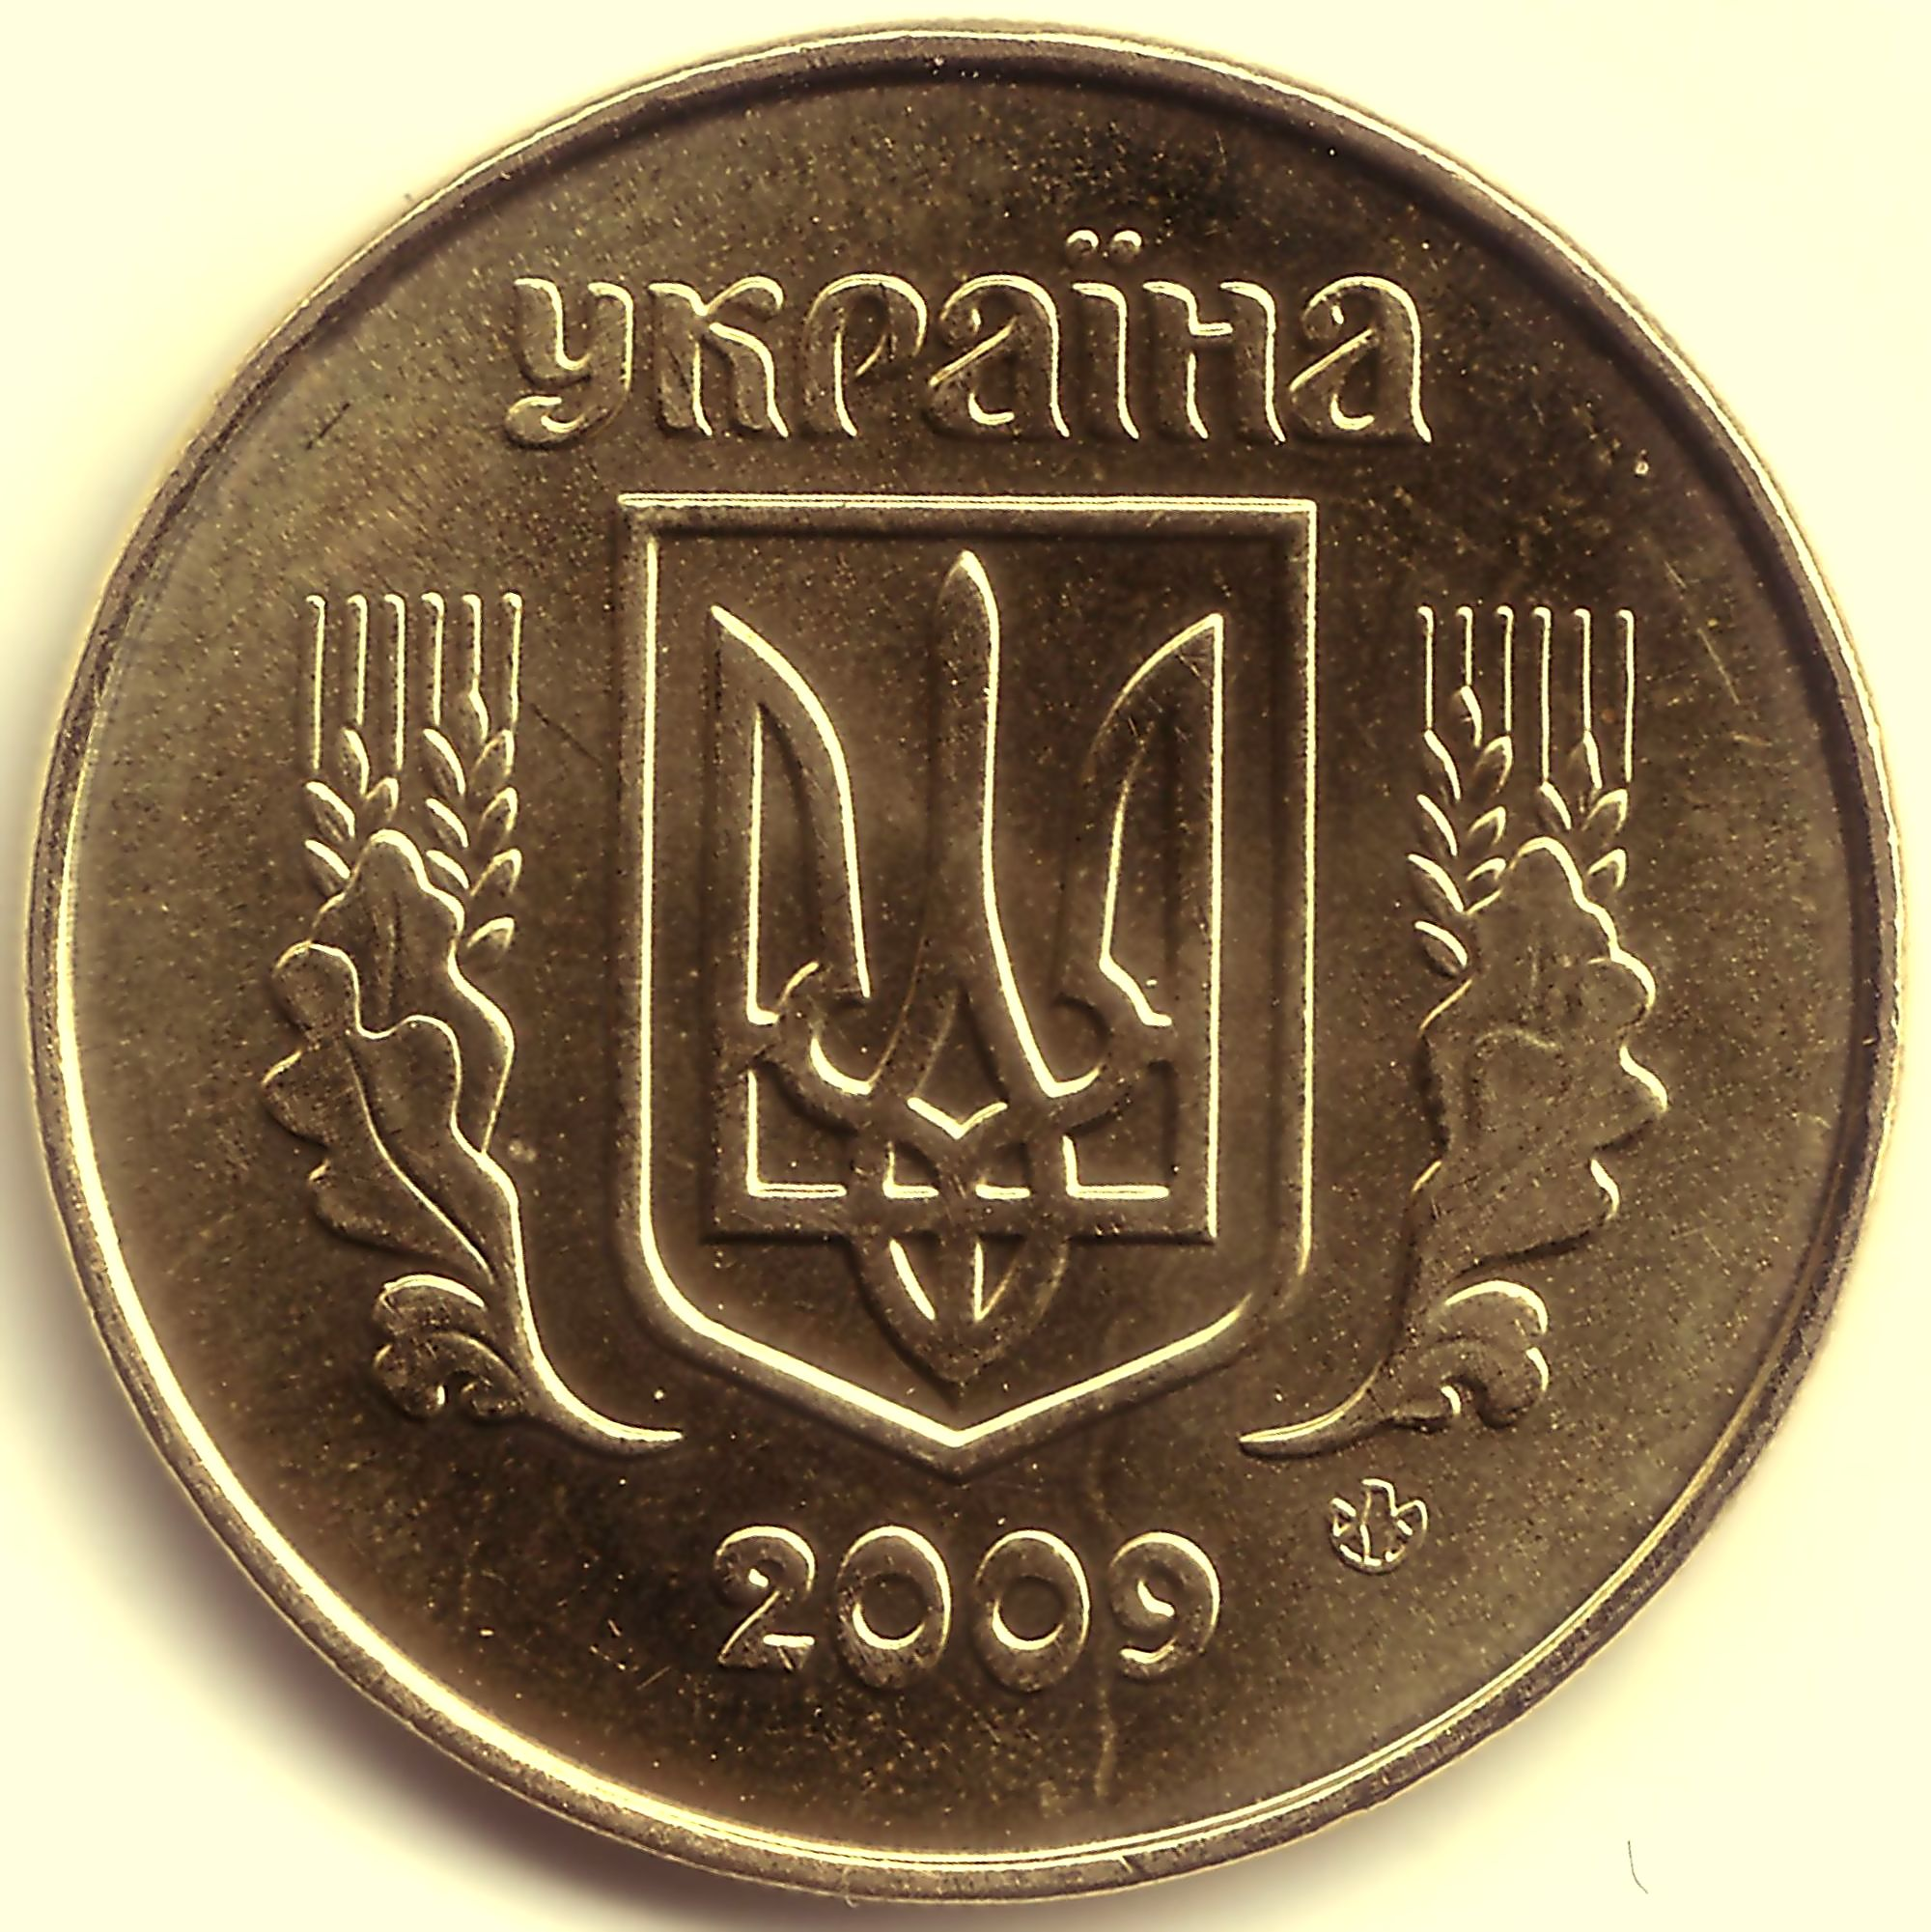 images currency coin - photo #30